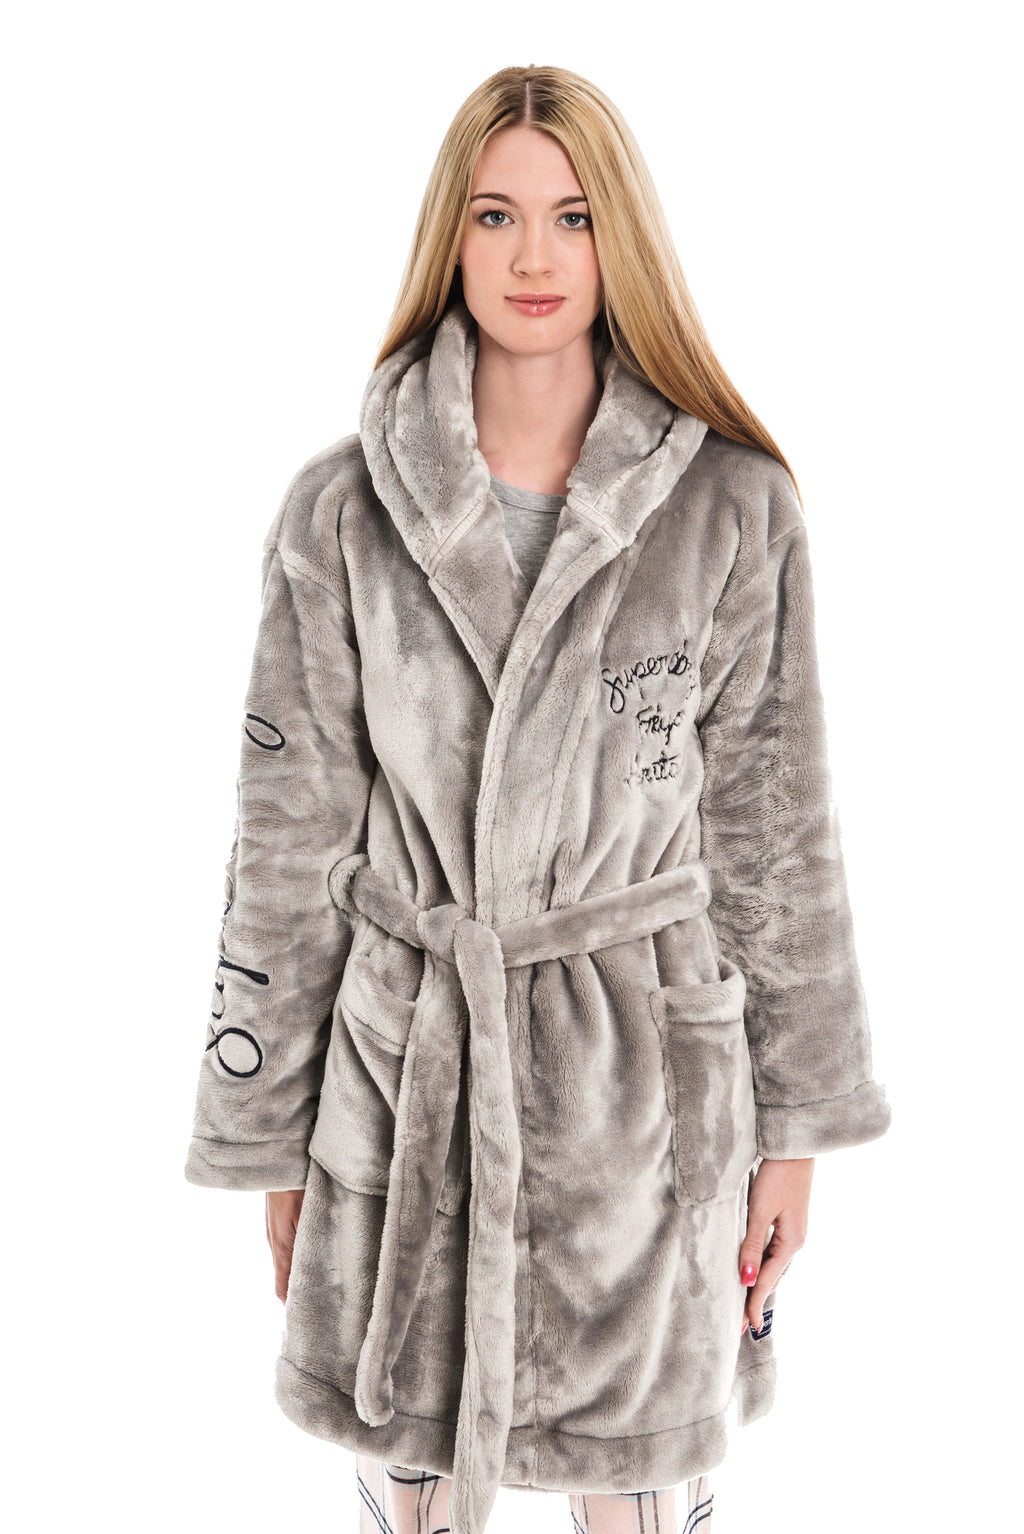 SUPERDRY SOPHIA LOUNGEWEAR ROBE - SKY GREY